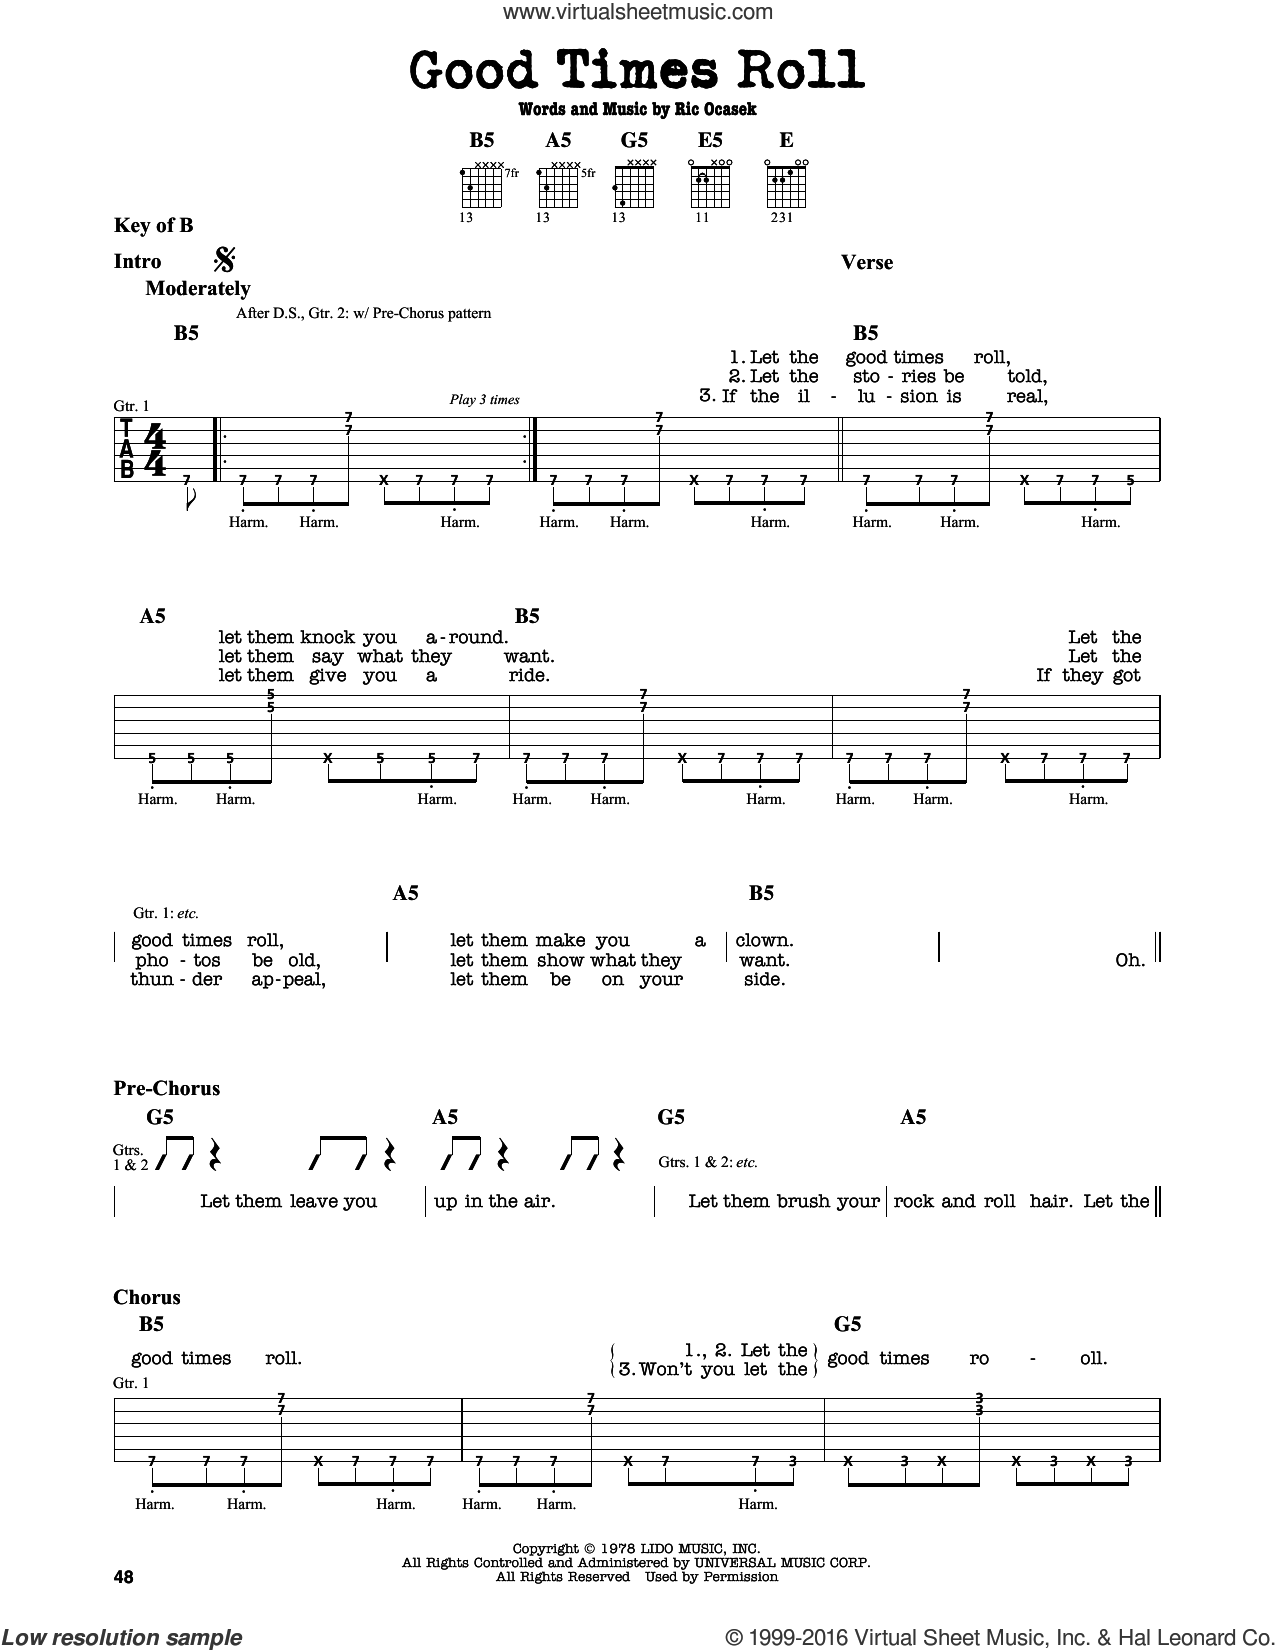 Good Times Roll sheet music for guitar solo (lead sheet) by The Cars, intermediate guitar (lead sheet). Score Image Preview.